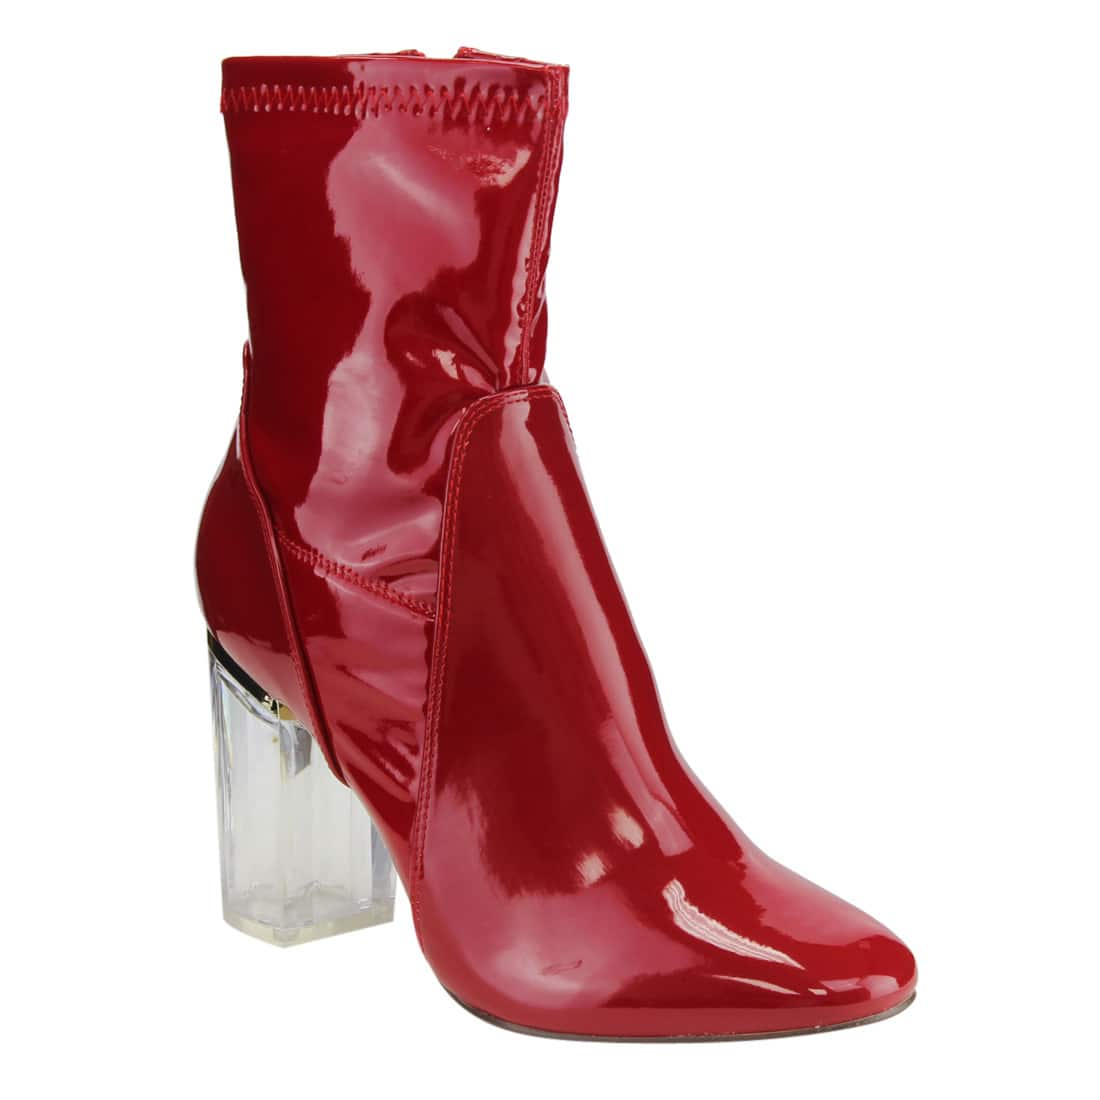 X2B FG00 Women's Ankle-high Side-zip Clear Lucite Heel Dress Booties